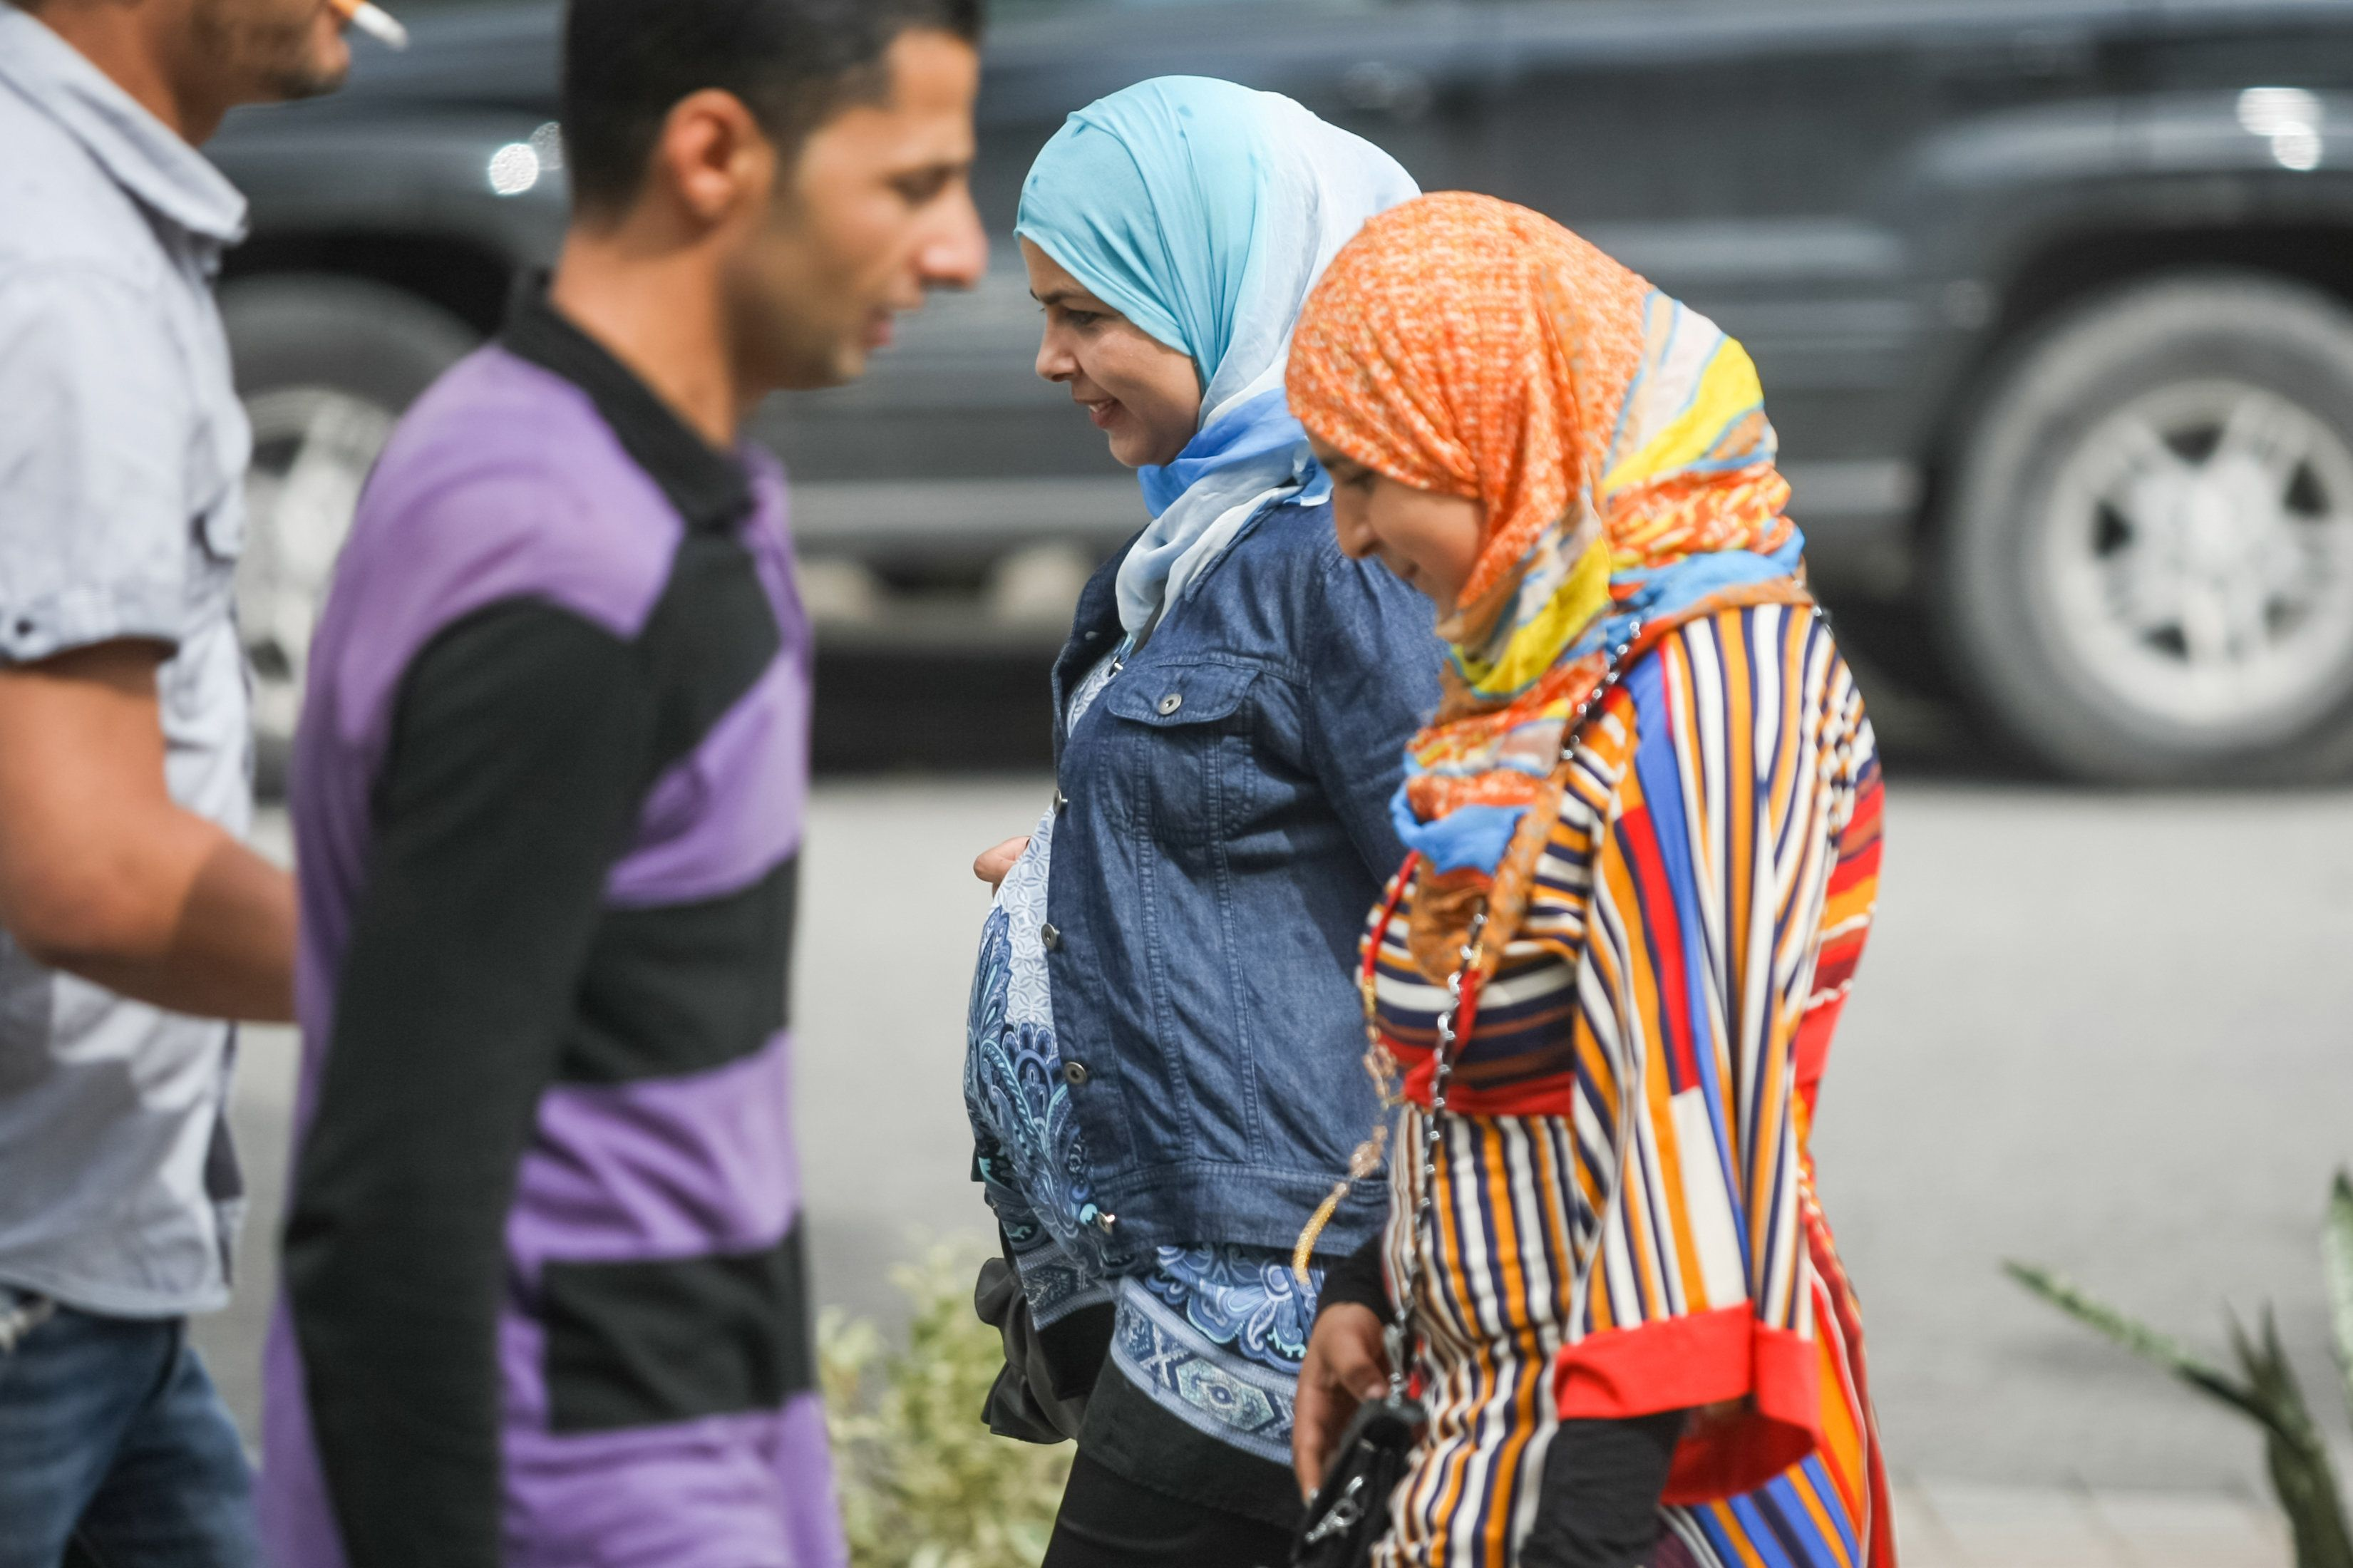 Tunisia has recently been at the forefront of women's rights among countries in the Middle East and North